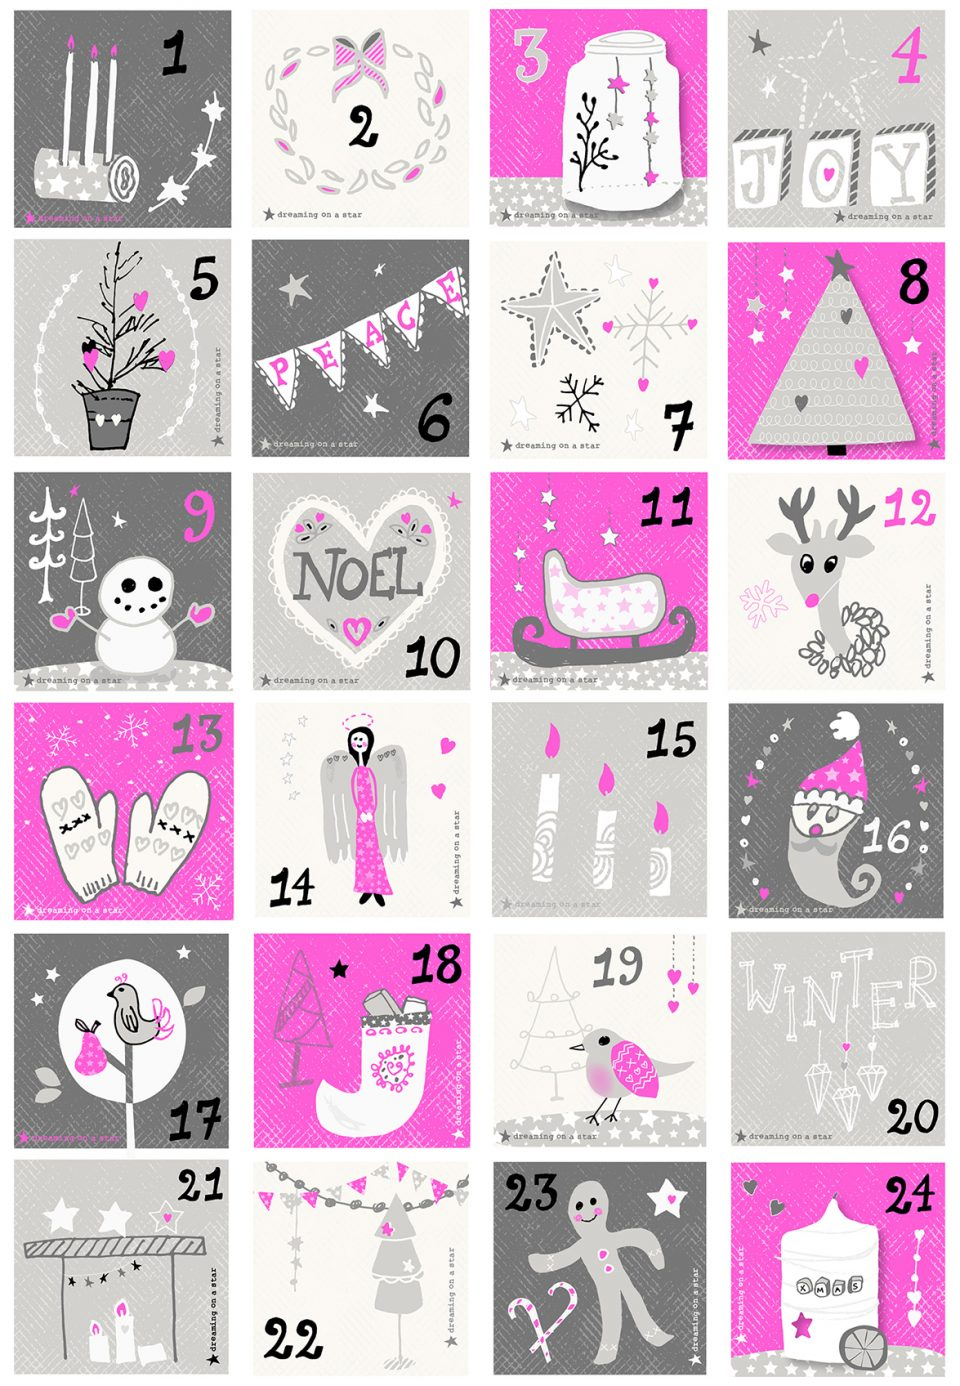 Advent Calendar by Dreaming on a Star - Christmas 2016